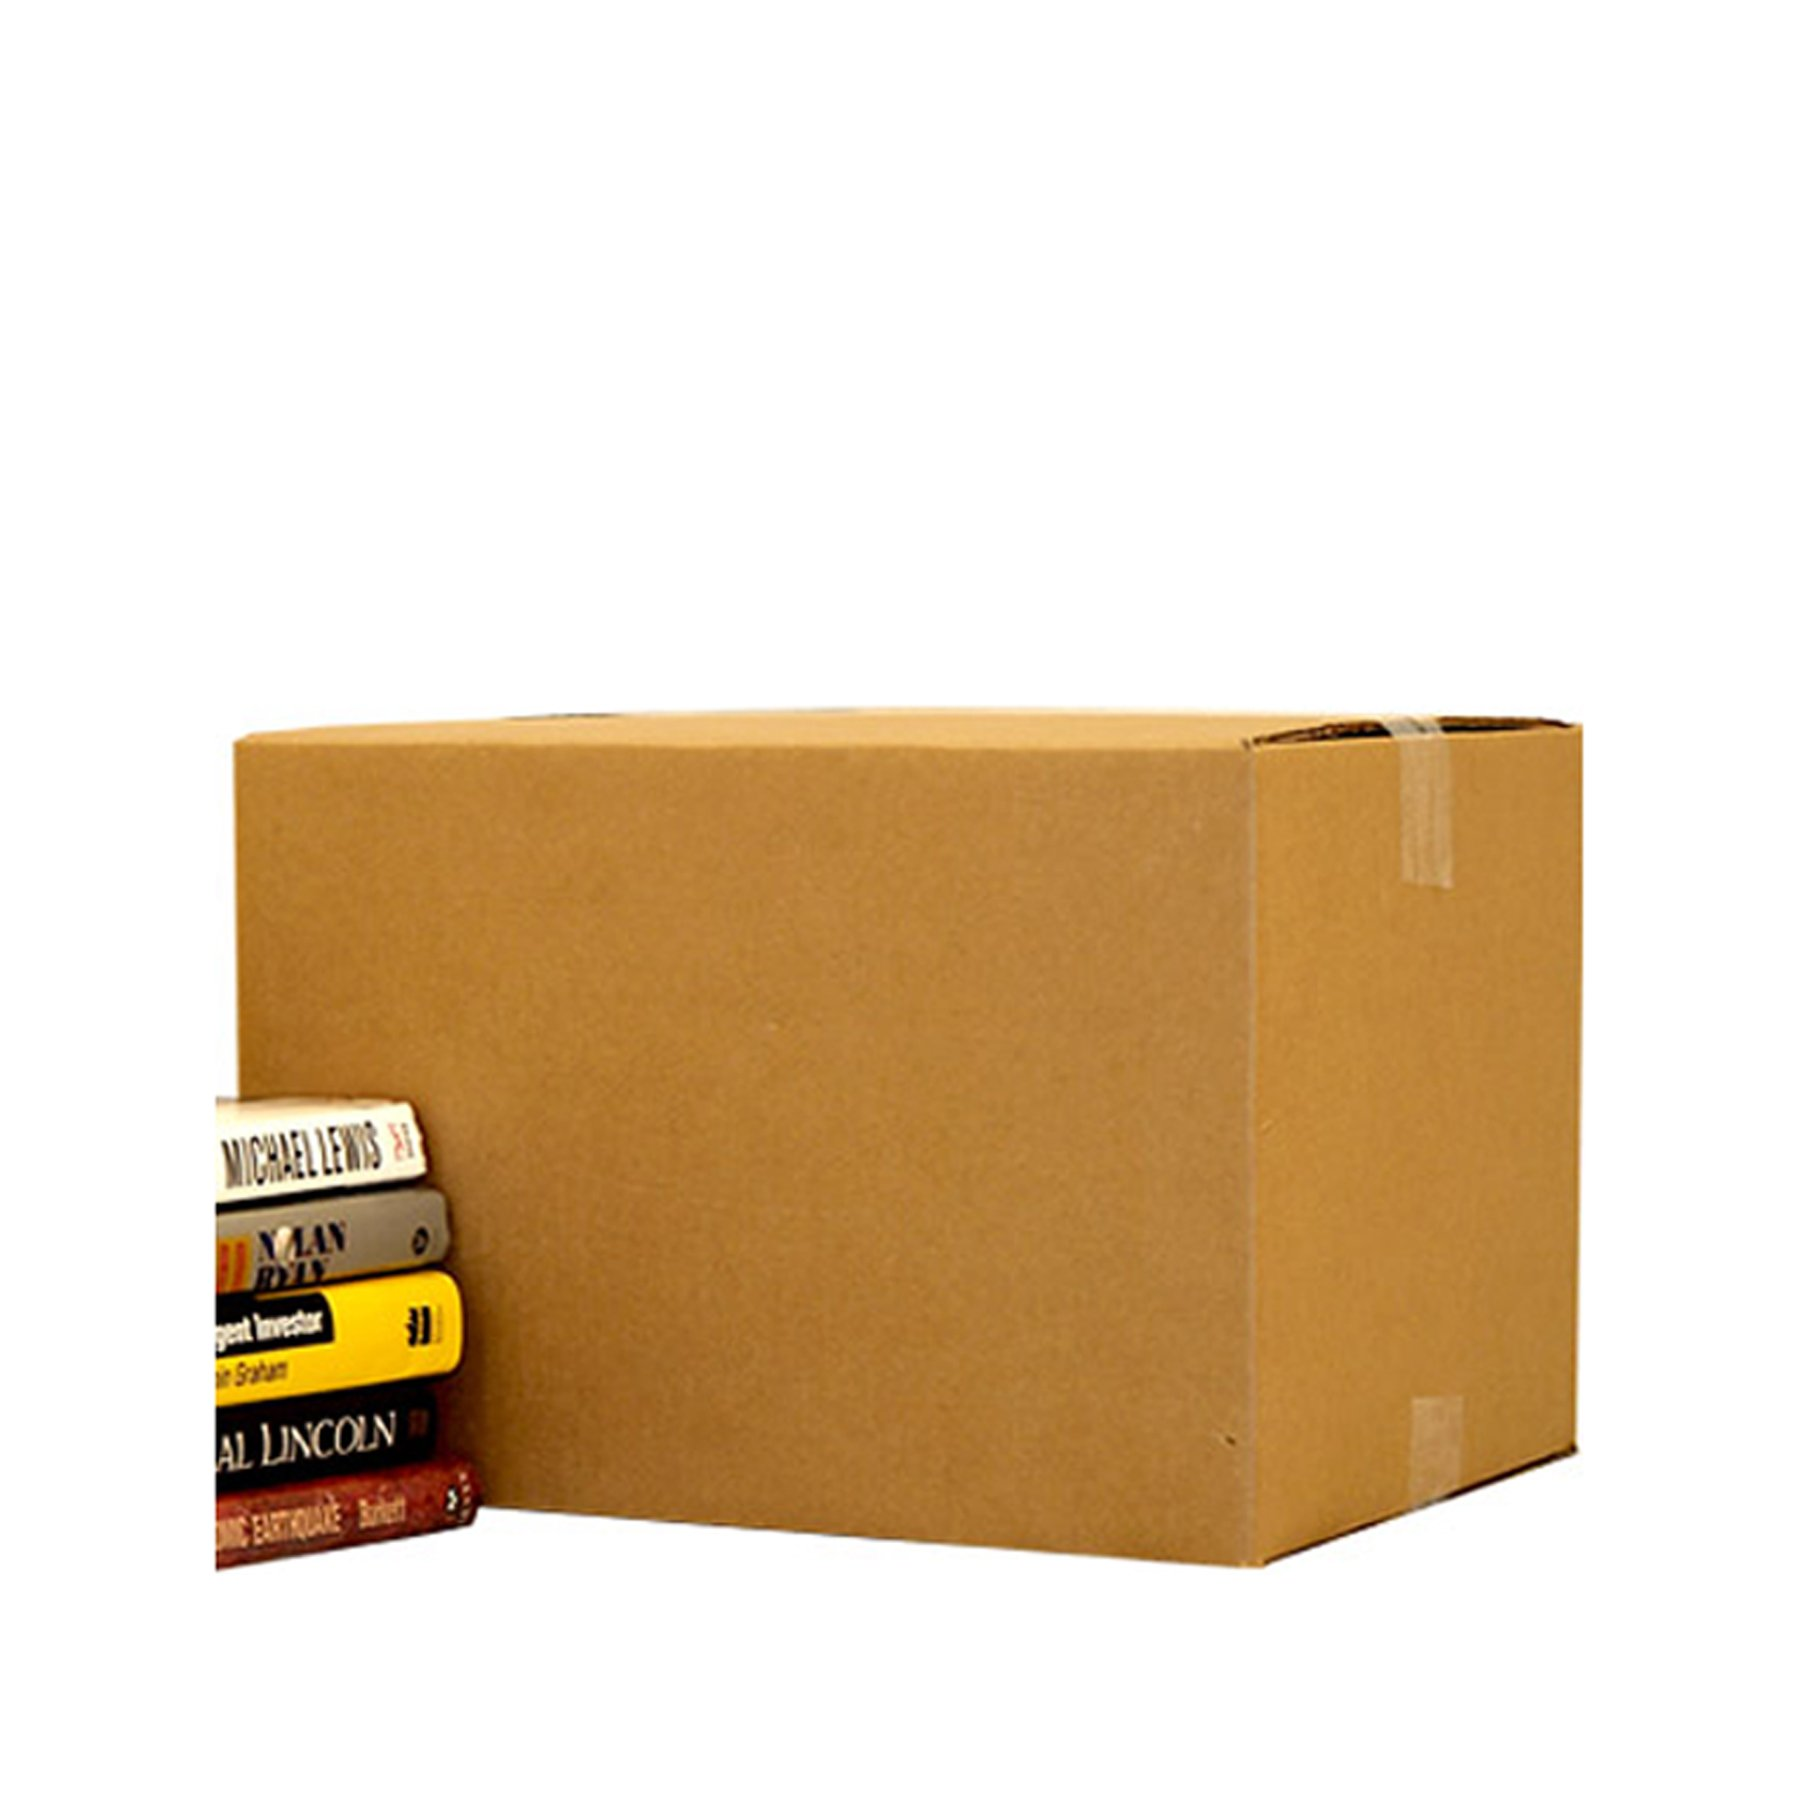 UBOXES Small Moving Boxes, 16'' x 10'' x 10'', 15 Pack (BOXMINISMA15)